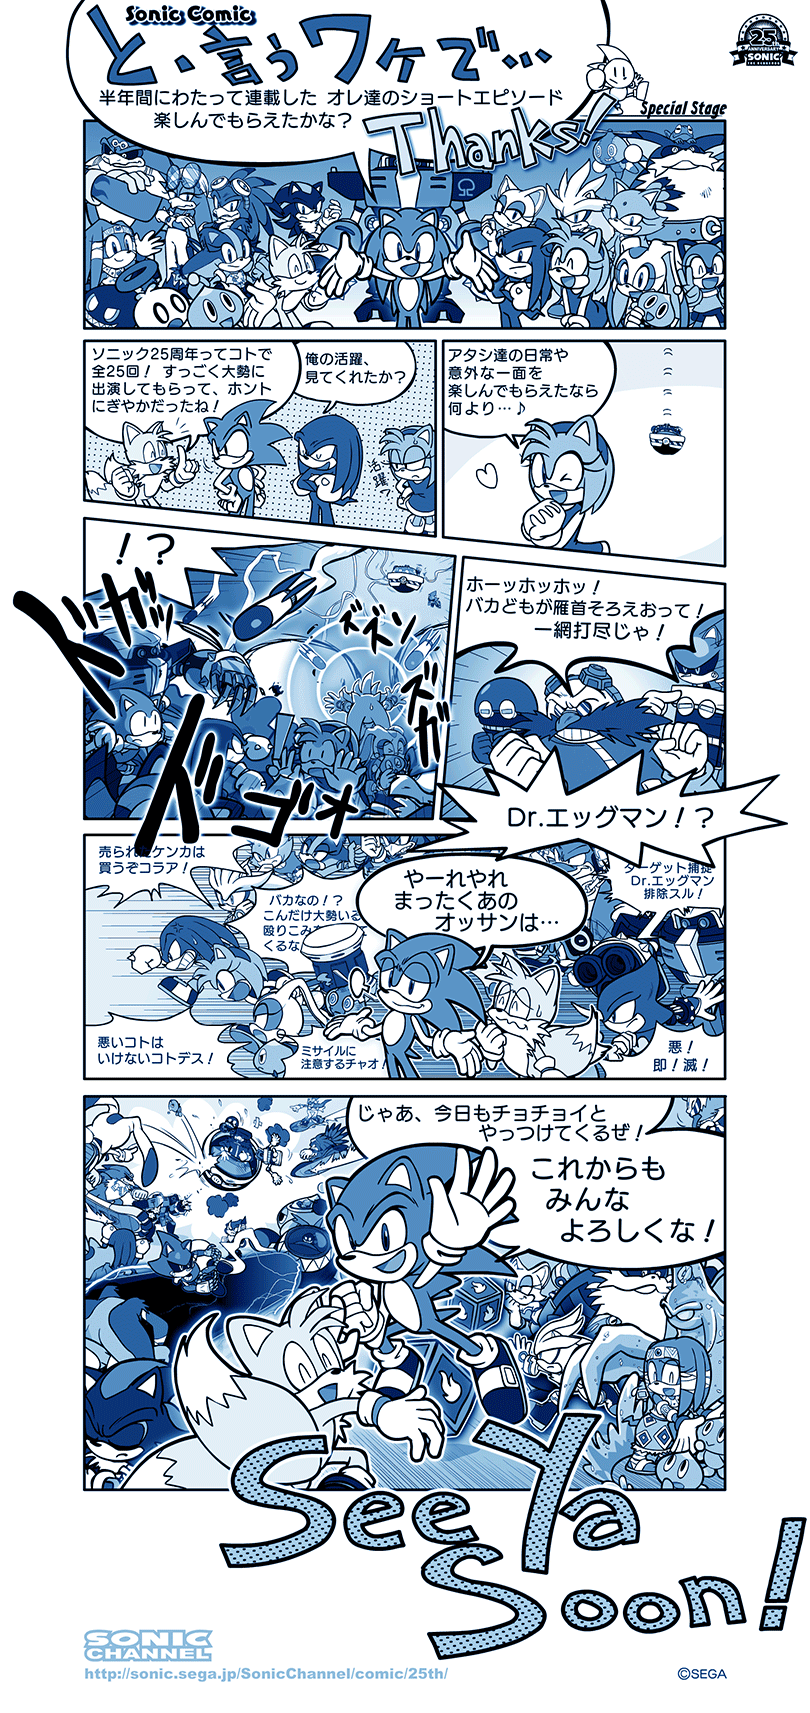 special stage sonic channel sonic comic translations sonic notes